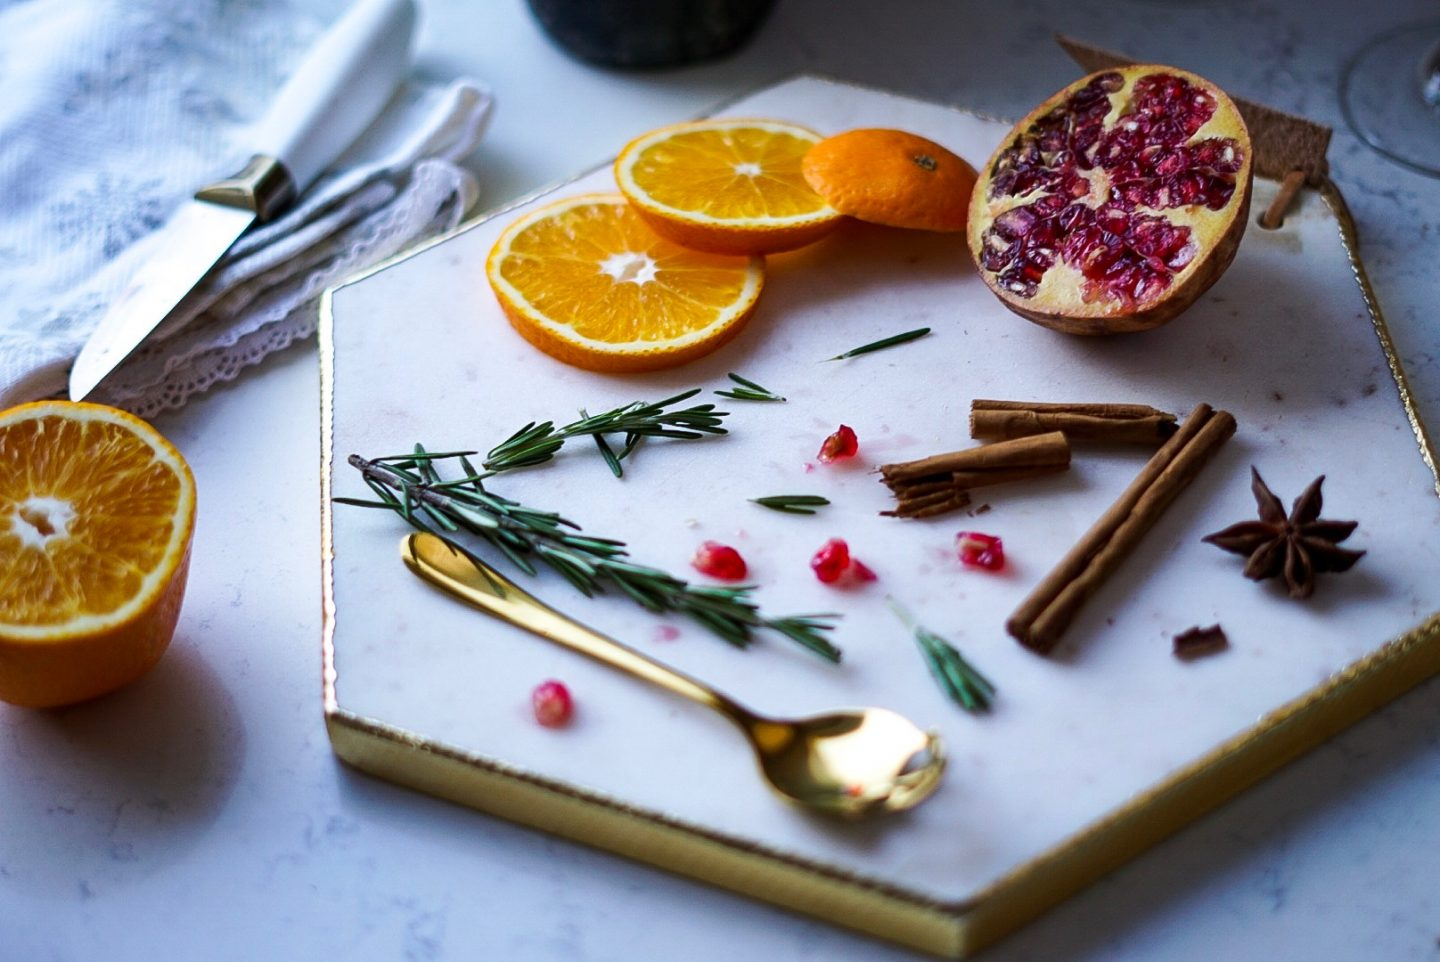 TK Maxx marble white chopping board with rosemary, pomegranate, cinnamon, star anise and orange